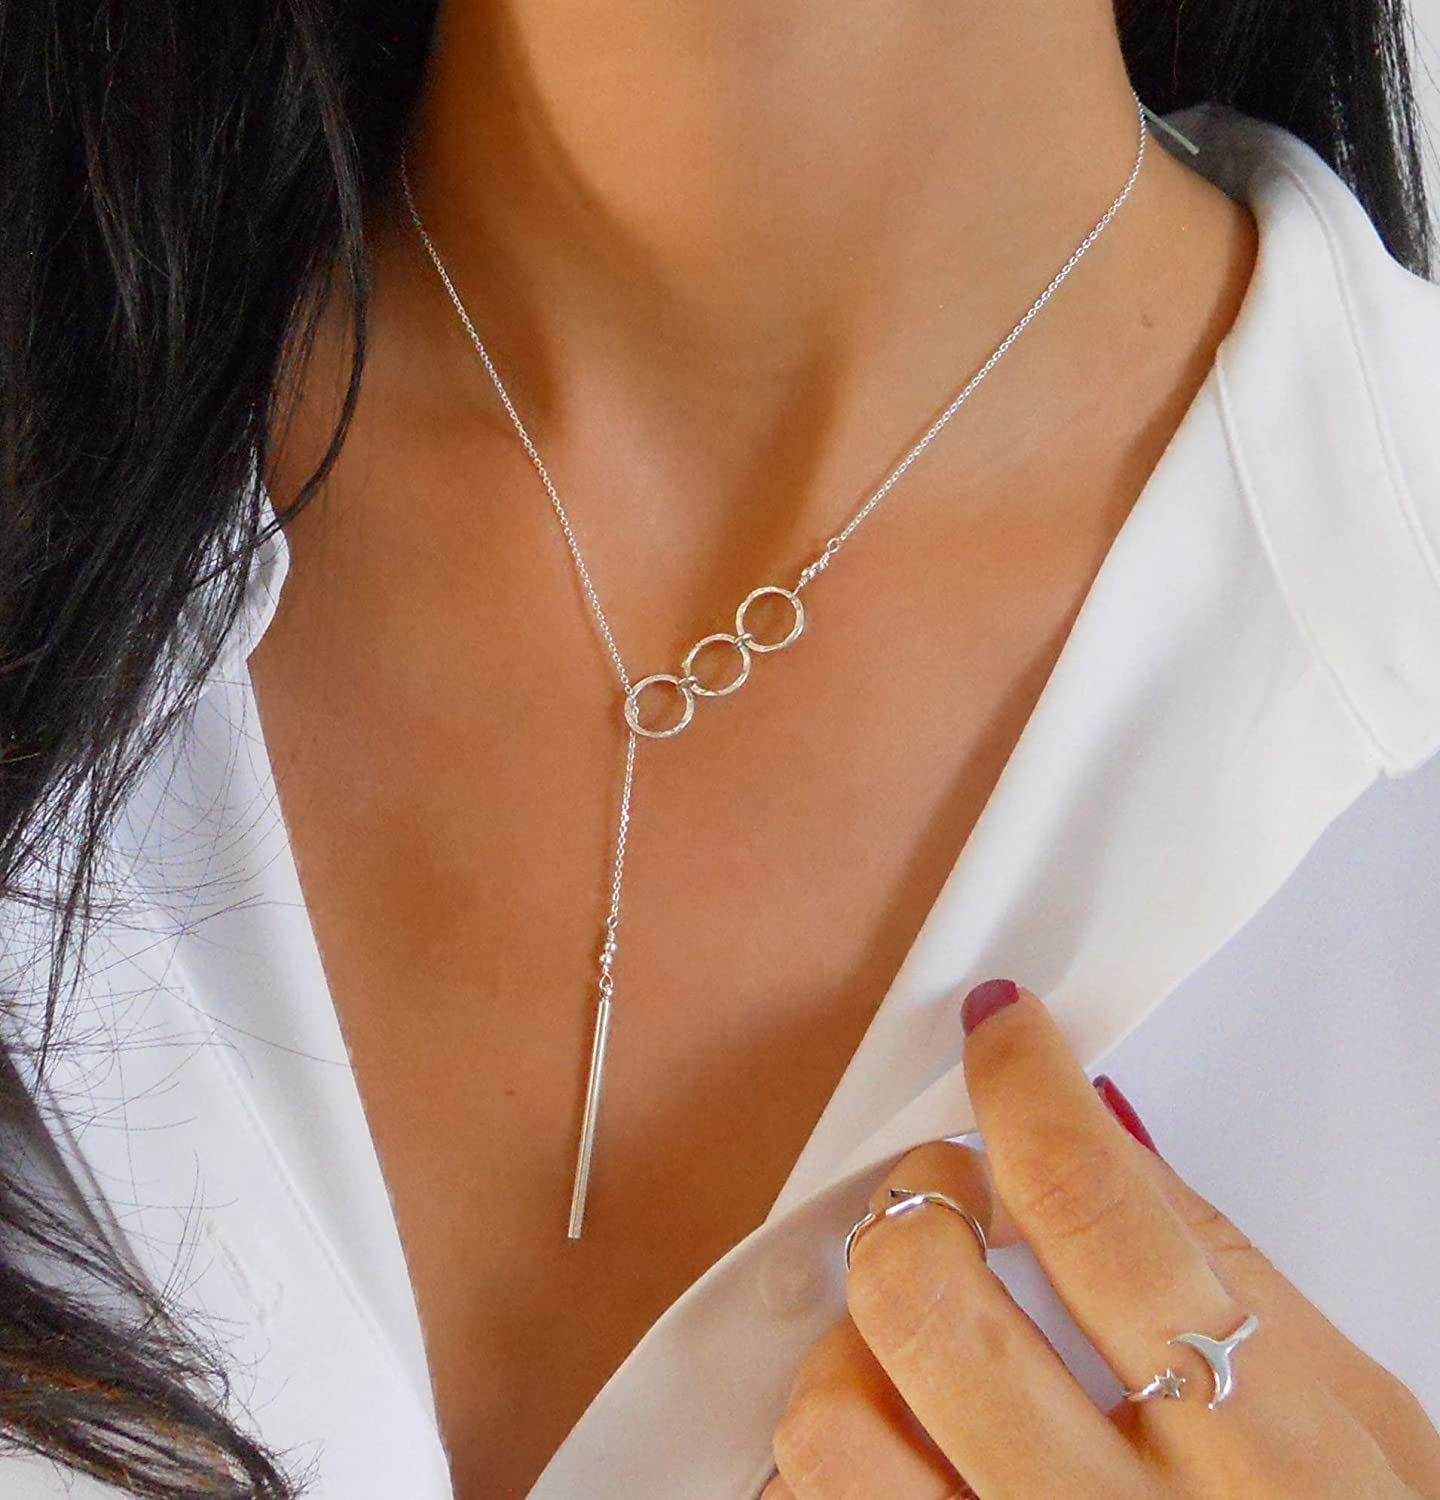 personalized gift womens circle Y necklace bohemian jewelry simple silver heart lariat necklace